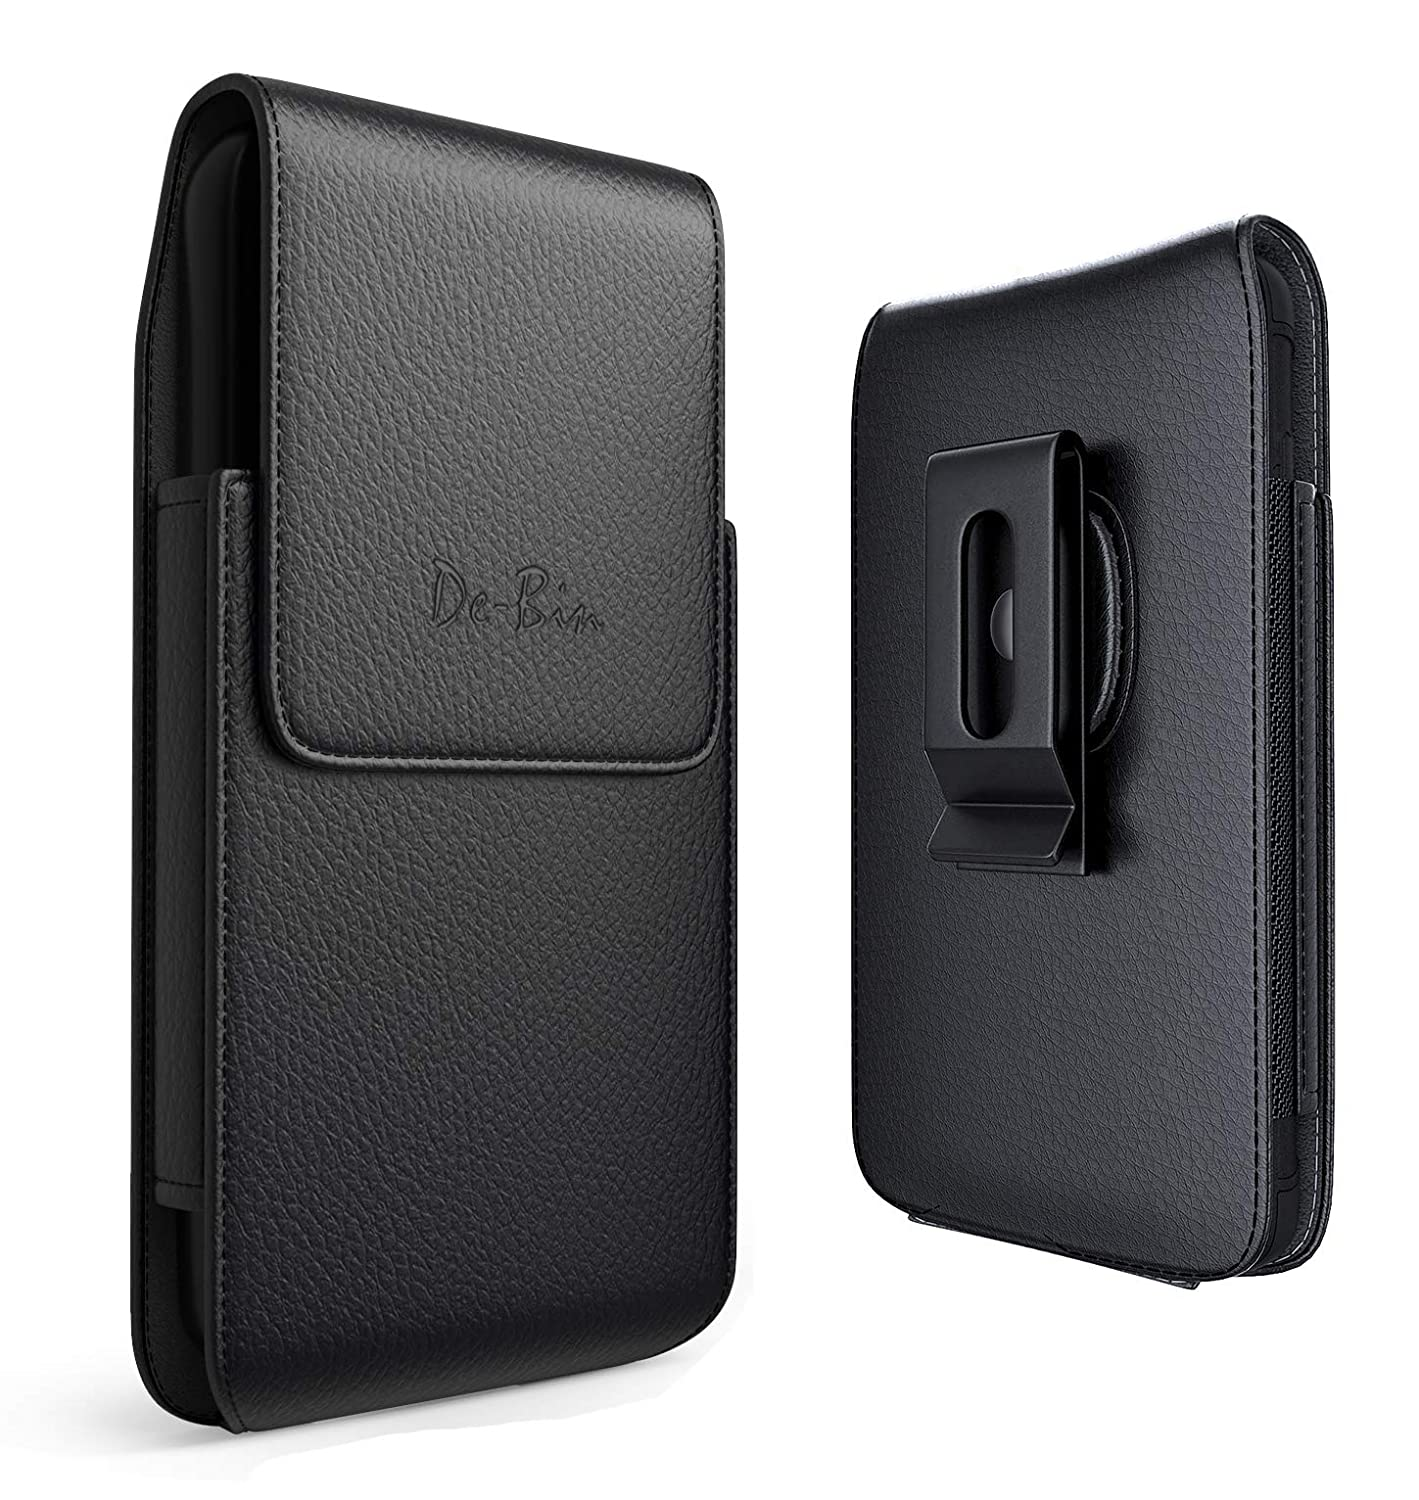 De-Bin iPhone Xs Max Holster Case, iPhone 6 Plus 6S Plus 8 Plus 7 Plus Belt Case with Clip Leather Holster Pouch Carrying Sleeve (Fits iPhone Plus w/Otterbox Commuter Case/Lifeproof Case On)